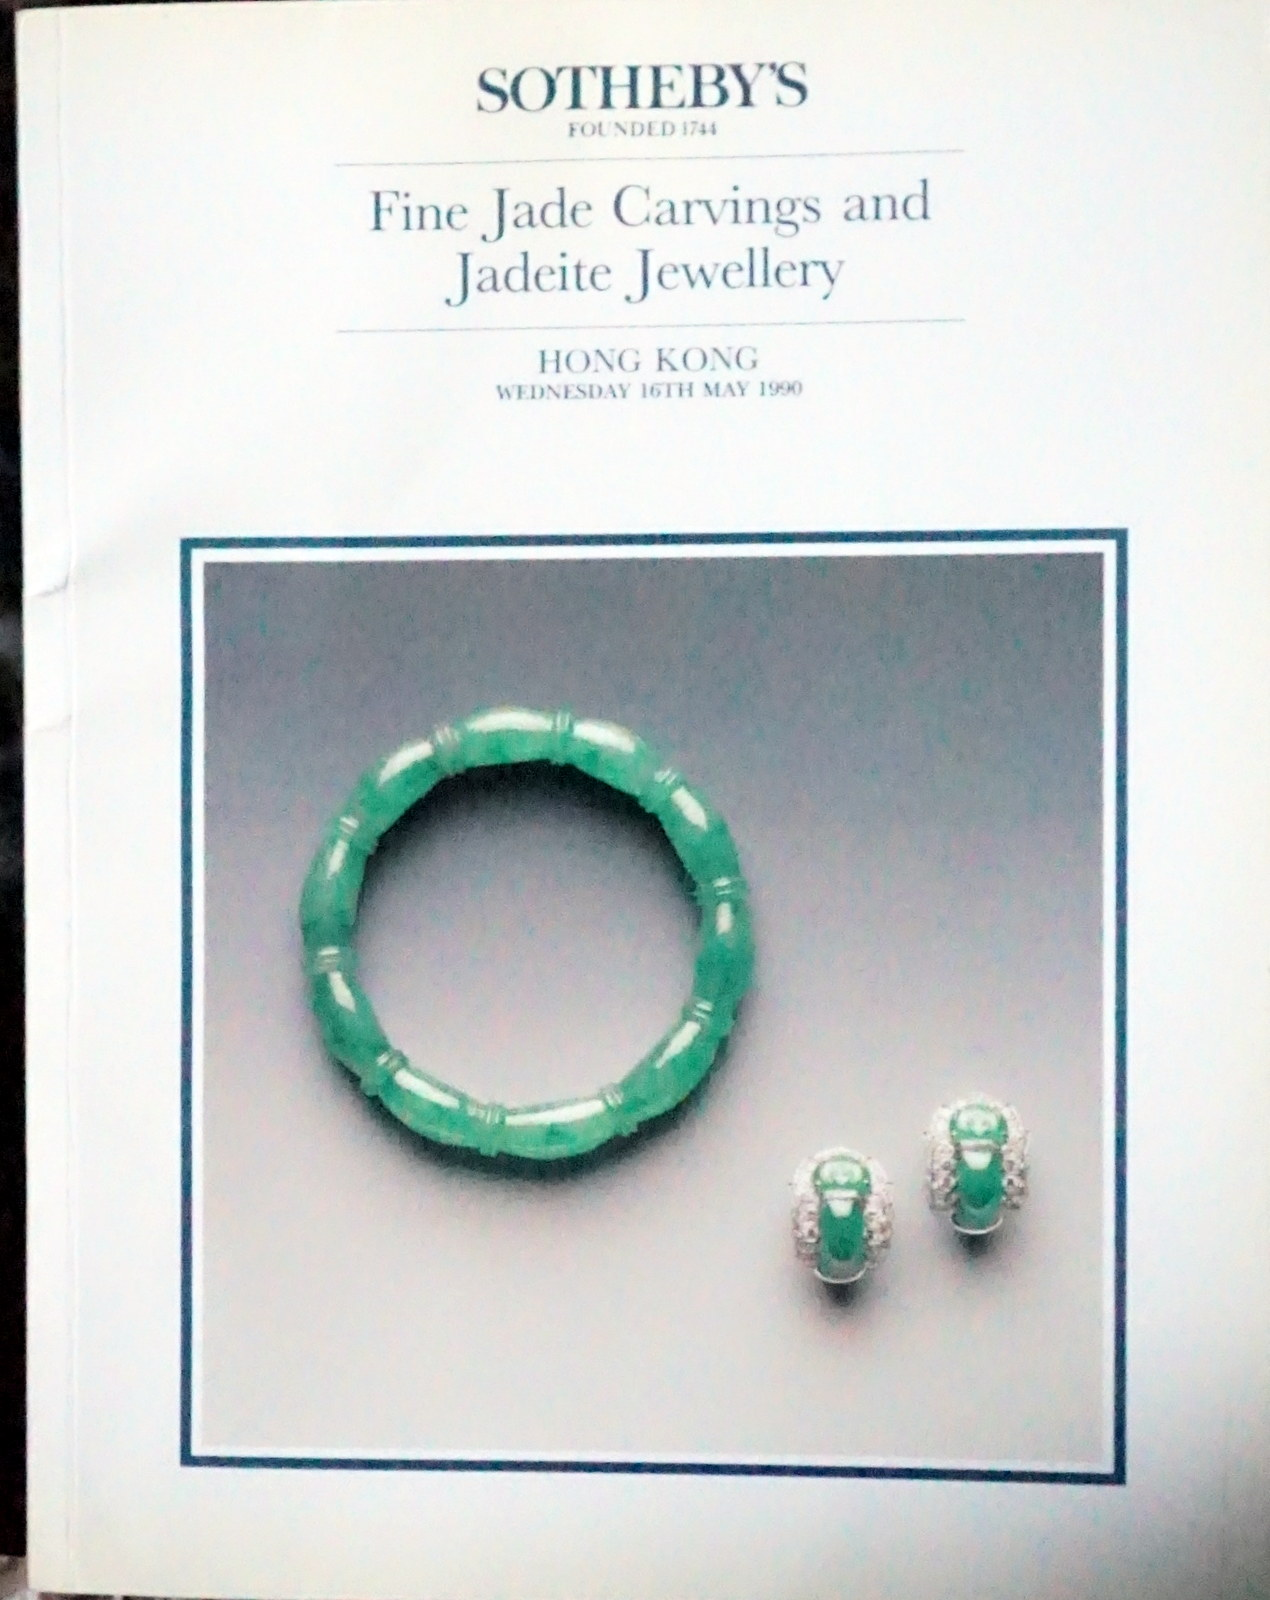 Ih Sotheby S Fine Jade Carvings And Jadeite Jewels Hong Kong 5 16 90 Sale Code Lianzi Auction Catalogs Home Of The Catalog Kid